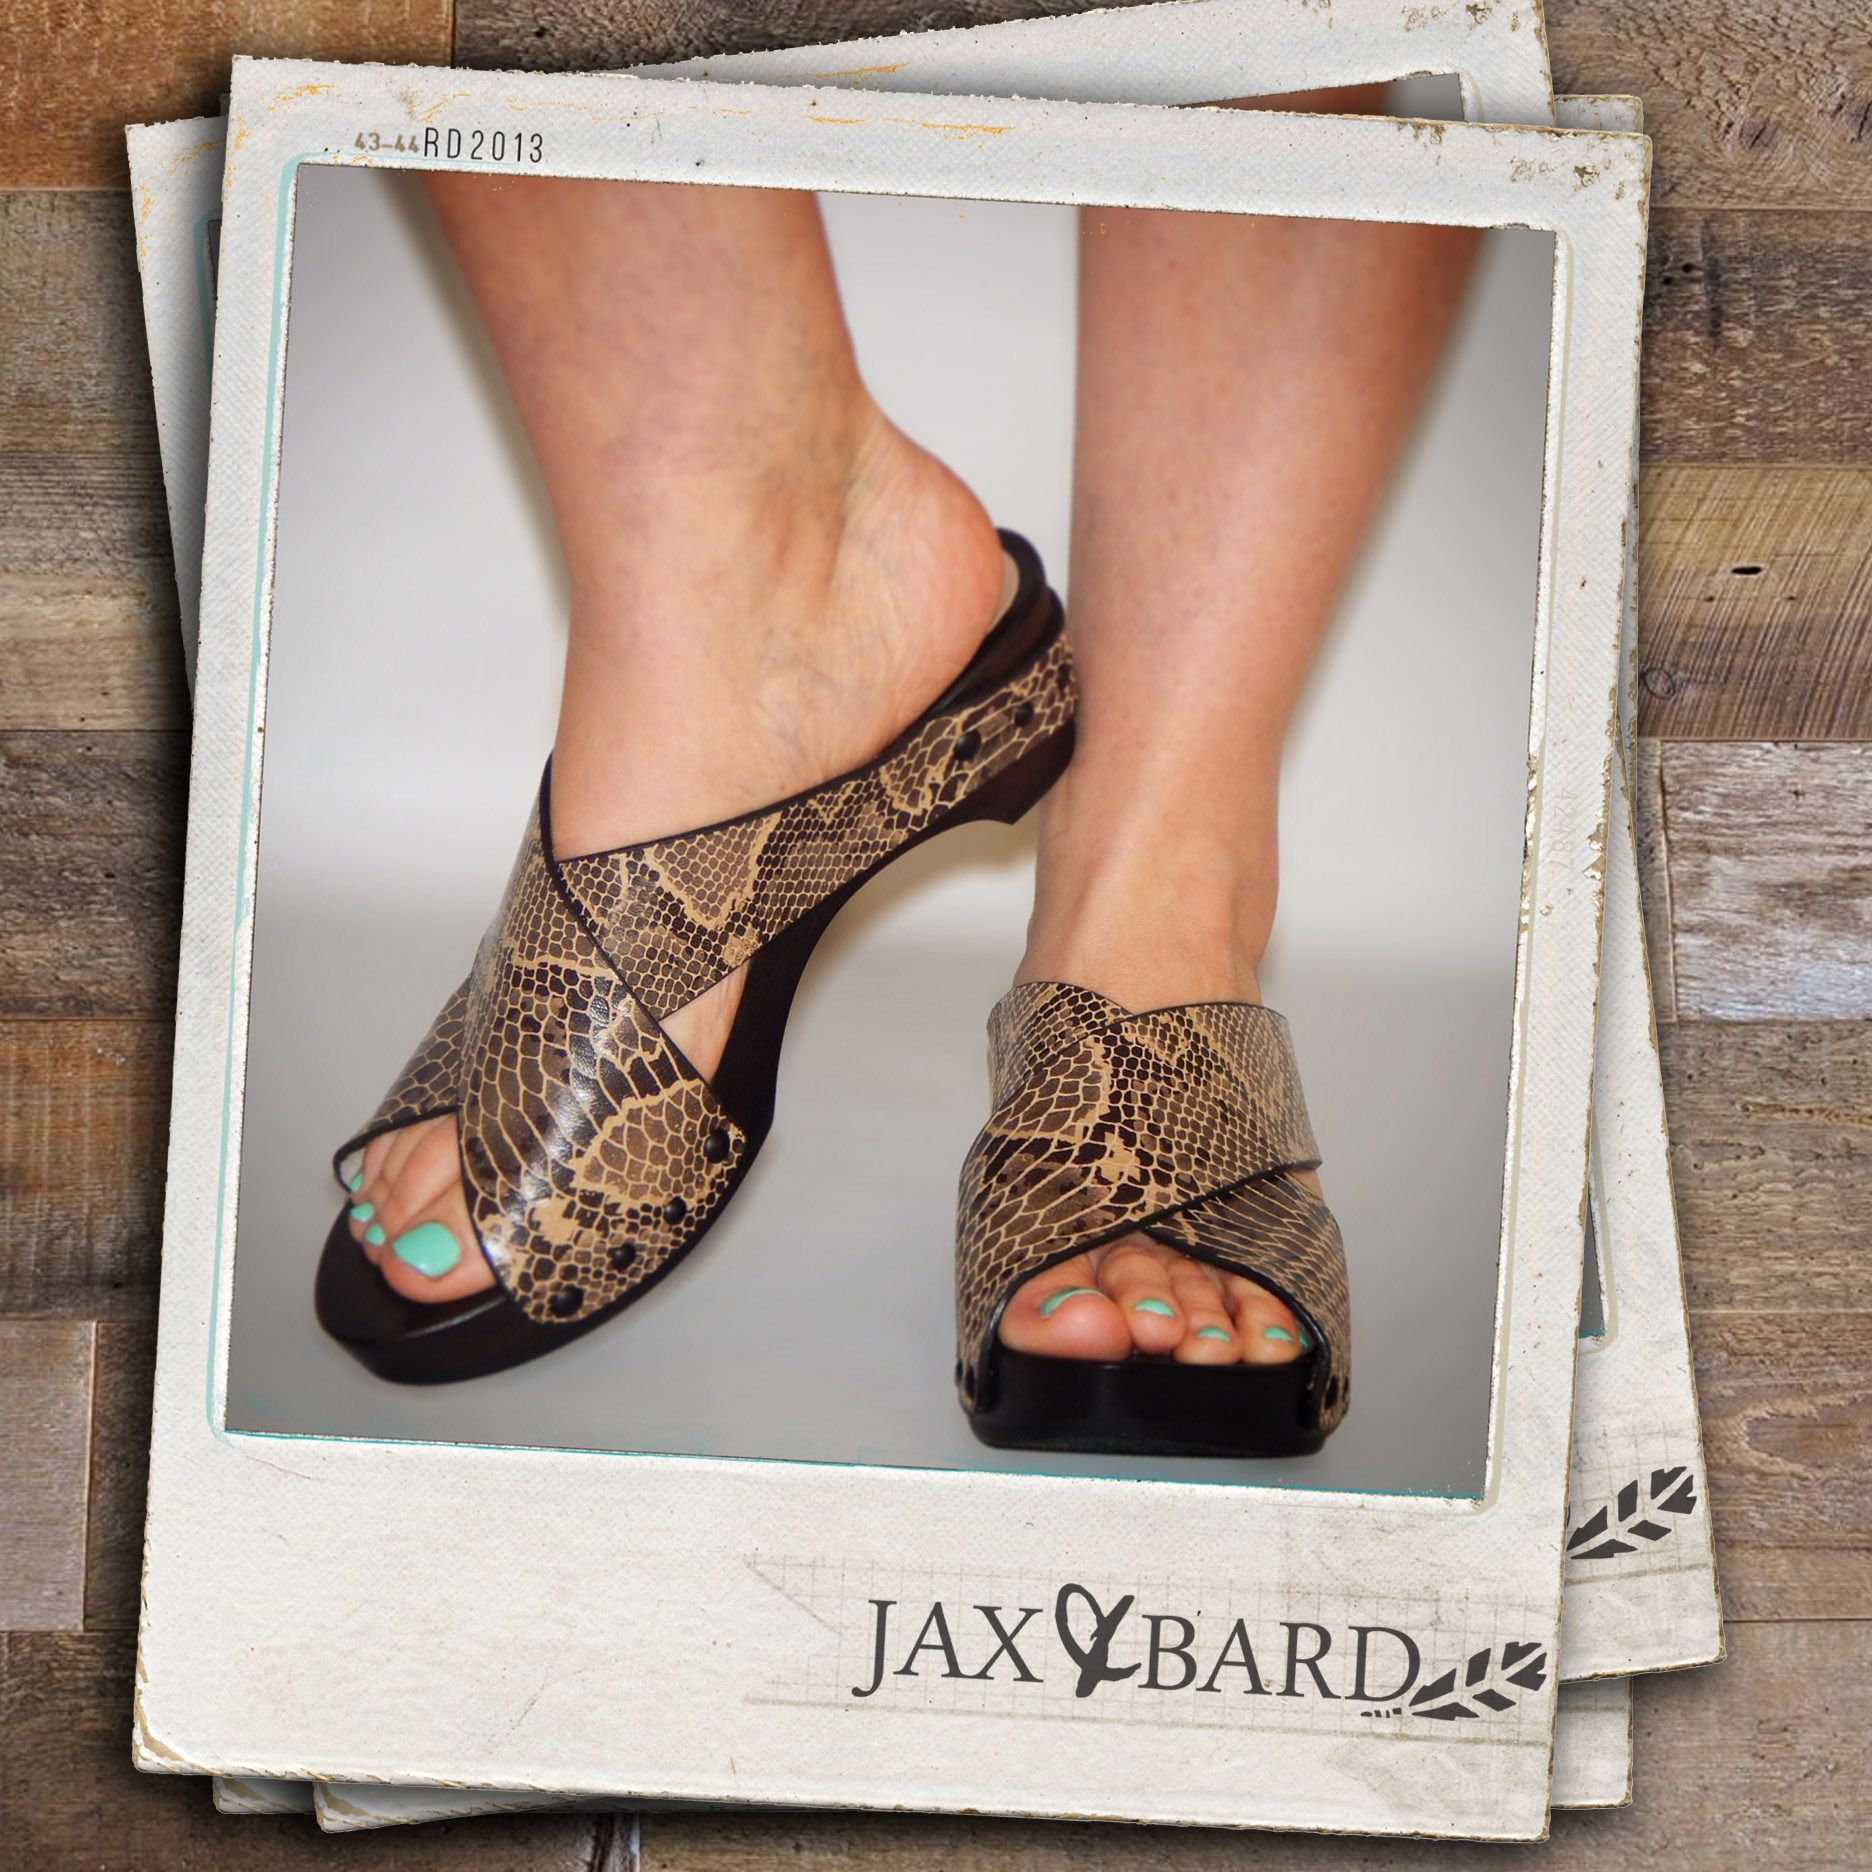 These are cute and look comfortable.